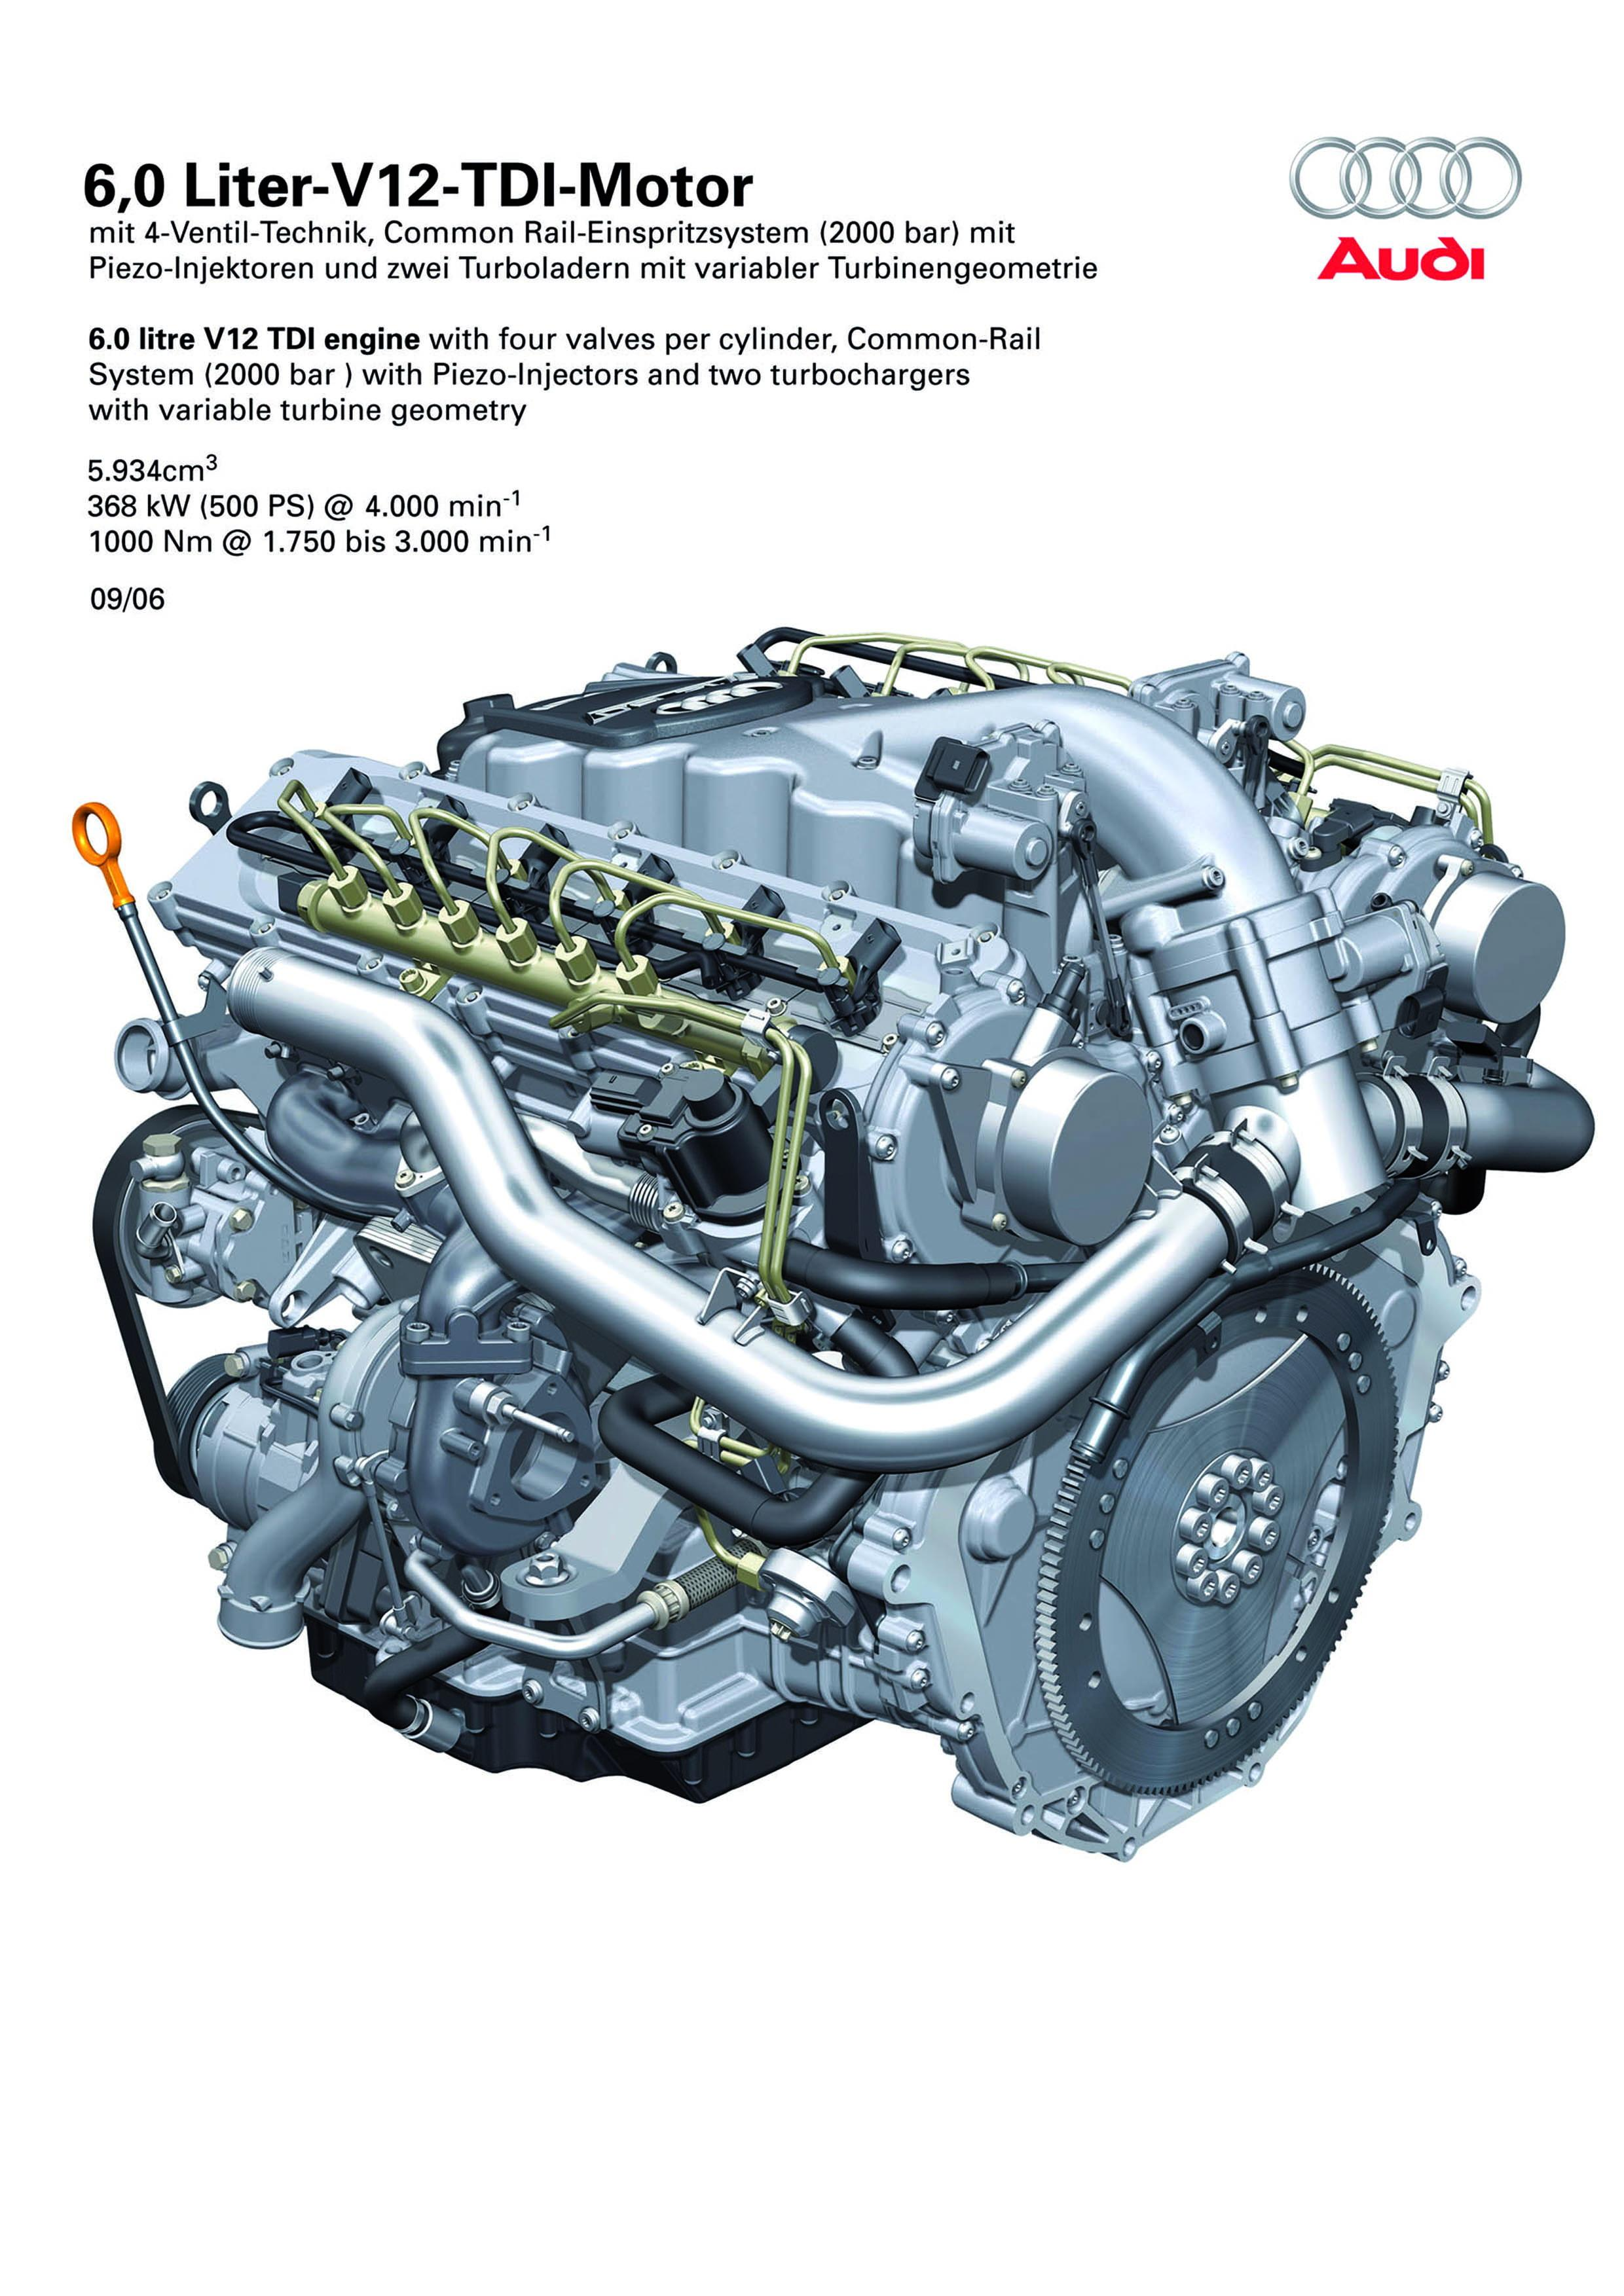 dial that volkswagen in engines using measure a tool showthread audi mark the cam correlation intake caliper crank and exhaust check chain or digital distance drive between will millimeters